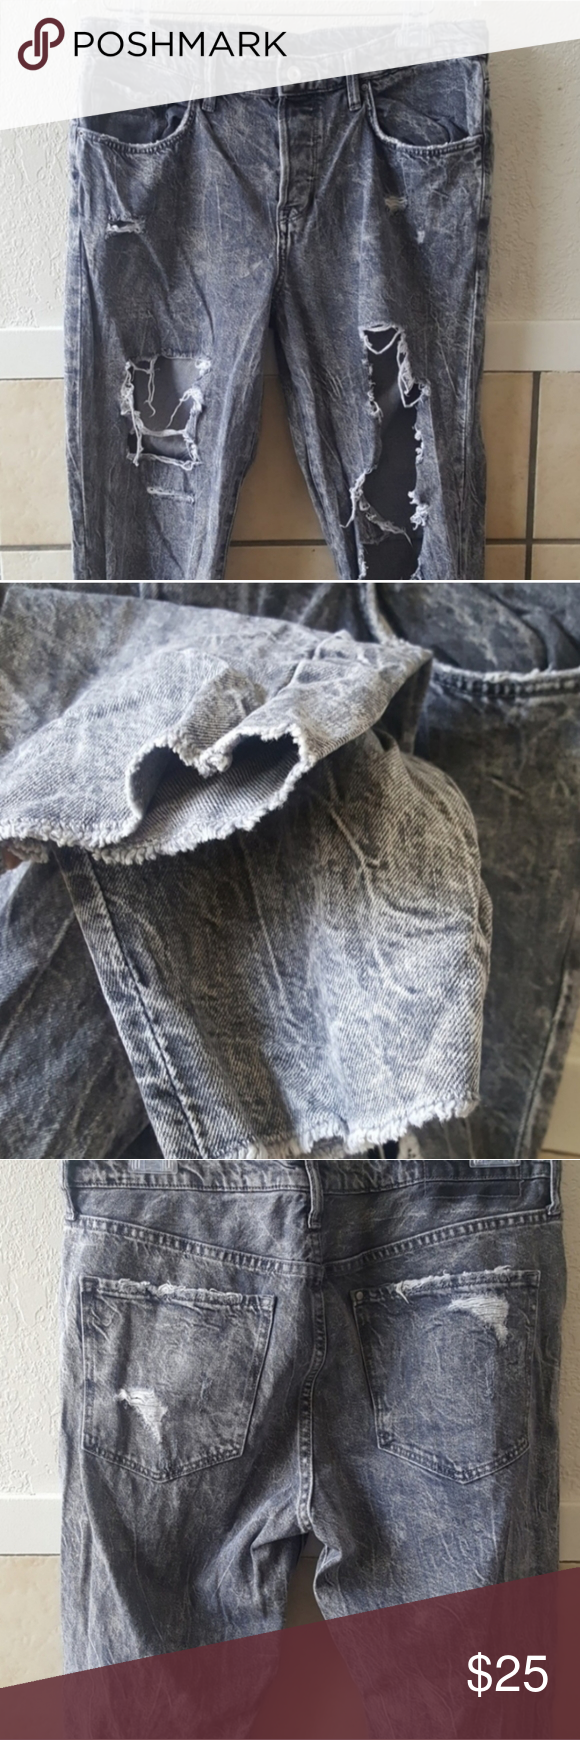 H&M super destroyed stone washed jeans size 10 H&M super destroyed stone washed jeans  Extra destroyed on legs and raw hem bottom.  Please see all pictures  Size 10 Waist measured when flat 17